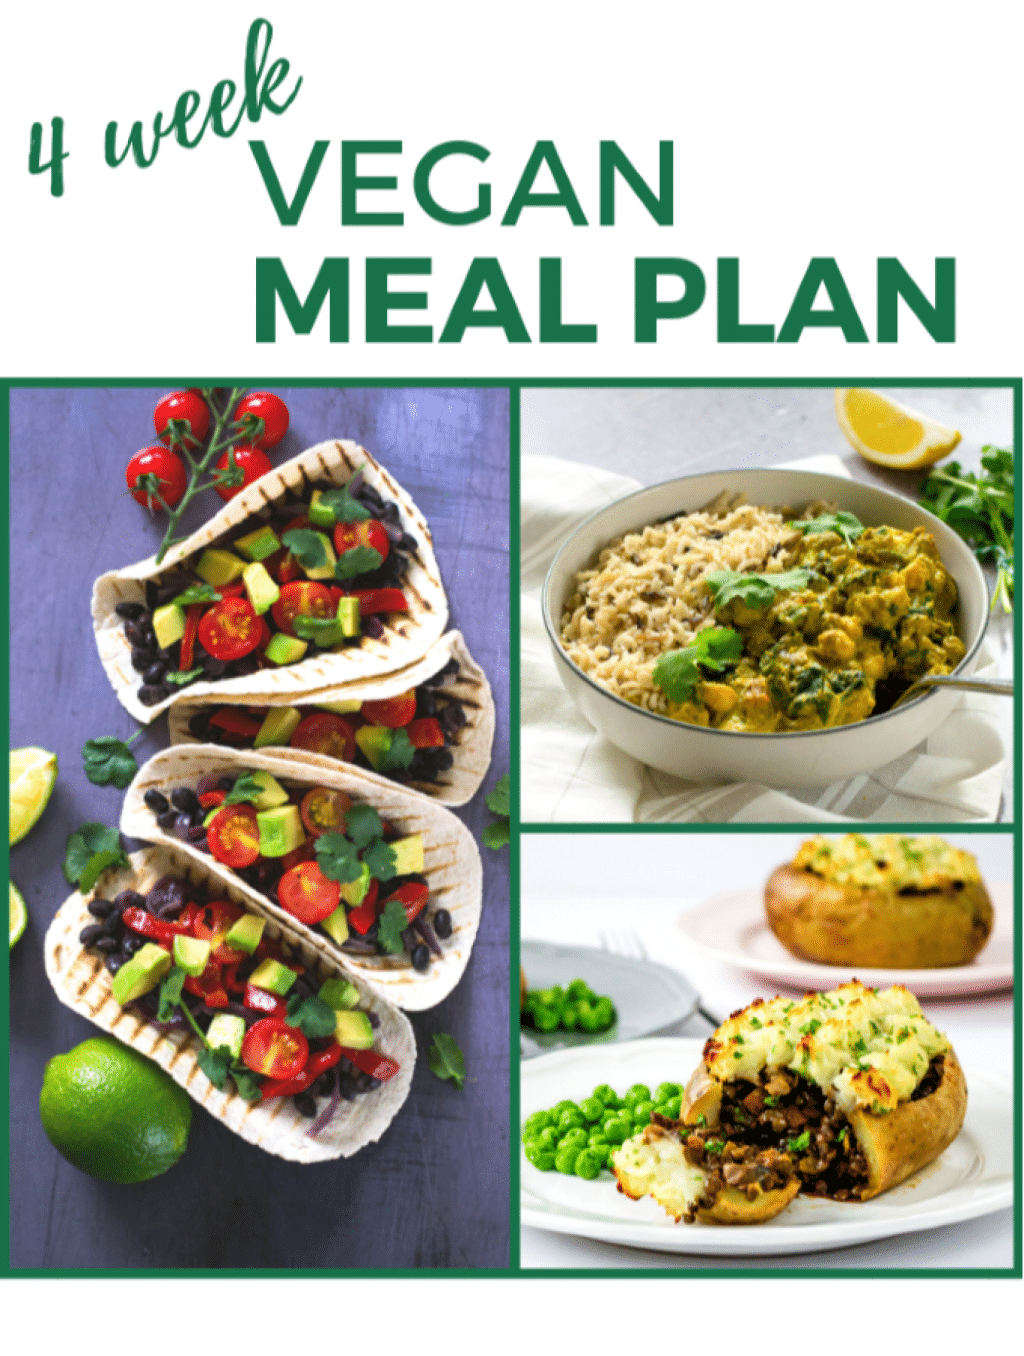 Four Week Vegan Meal Plan And Shopping List The Veg Space